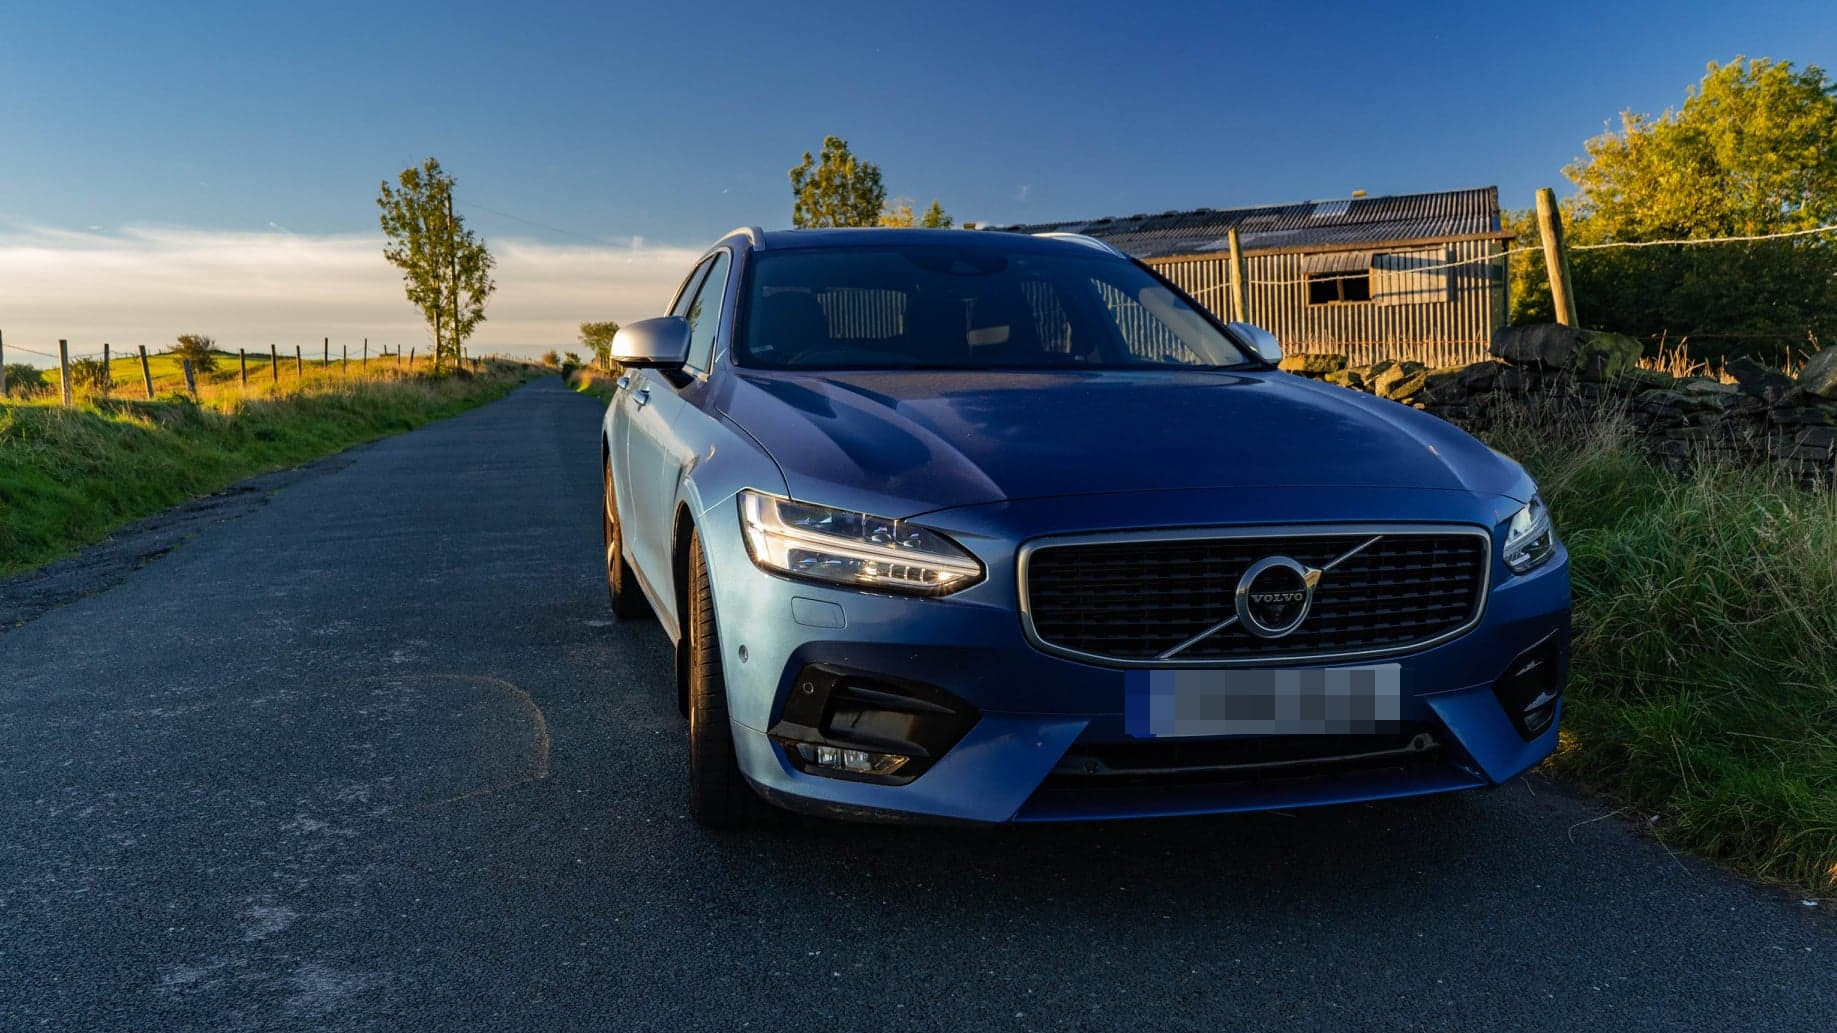 Volvo recalling more than 500,000 cars over fire risk